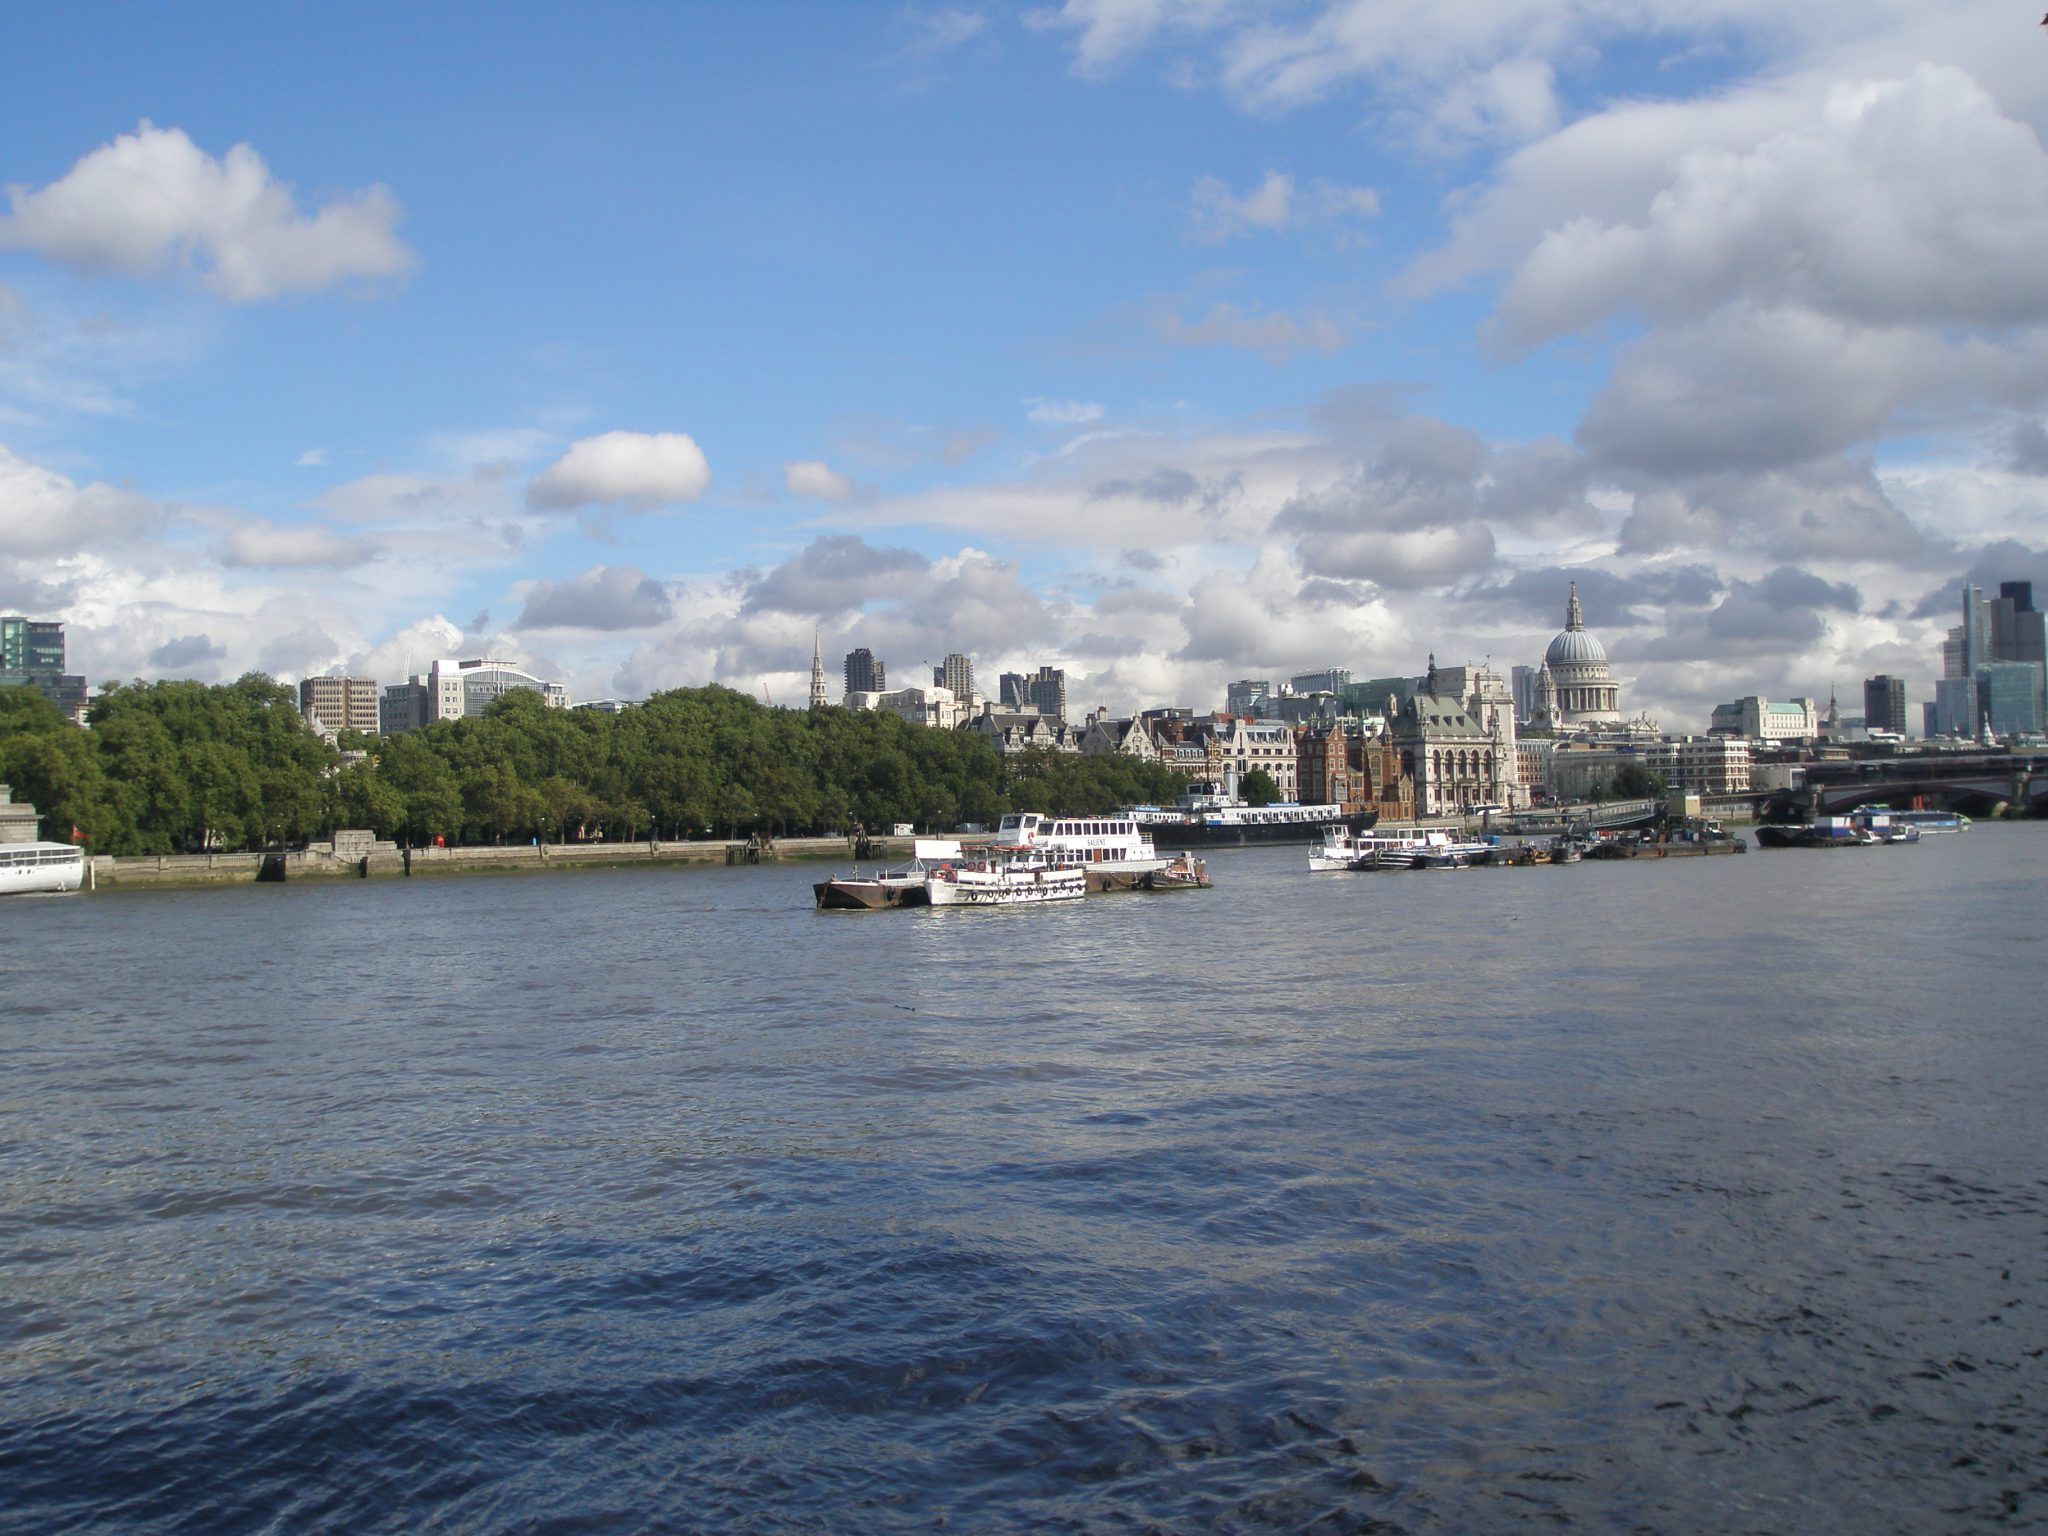 View from the South Bank, across the Thames, toward St.Paul's Cathedral